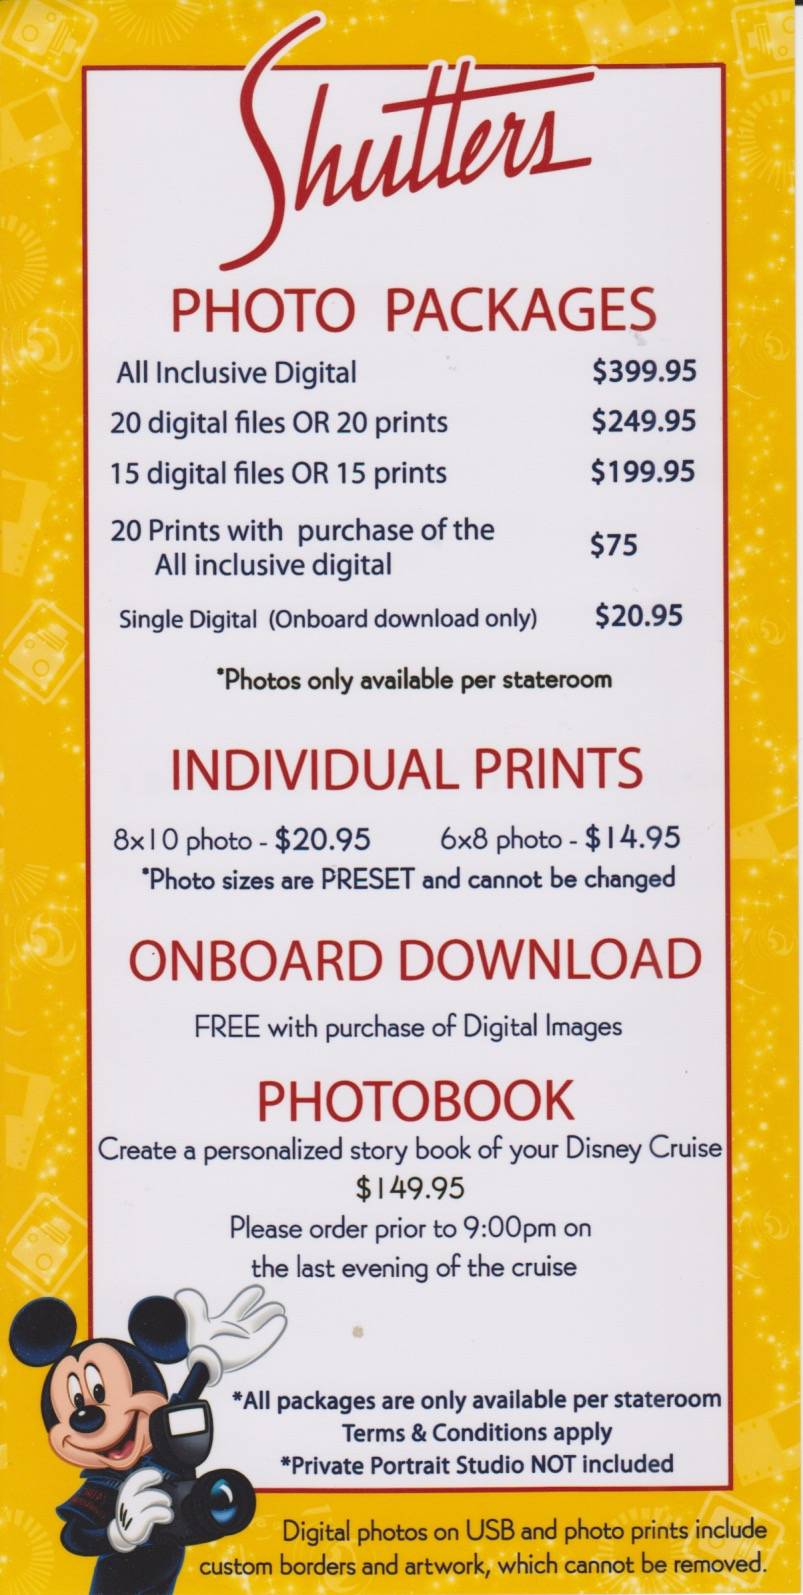 Disney cruise shutters prices